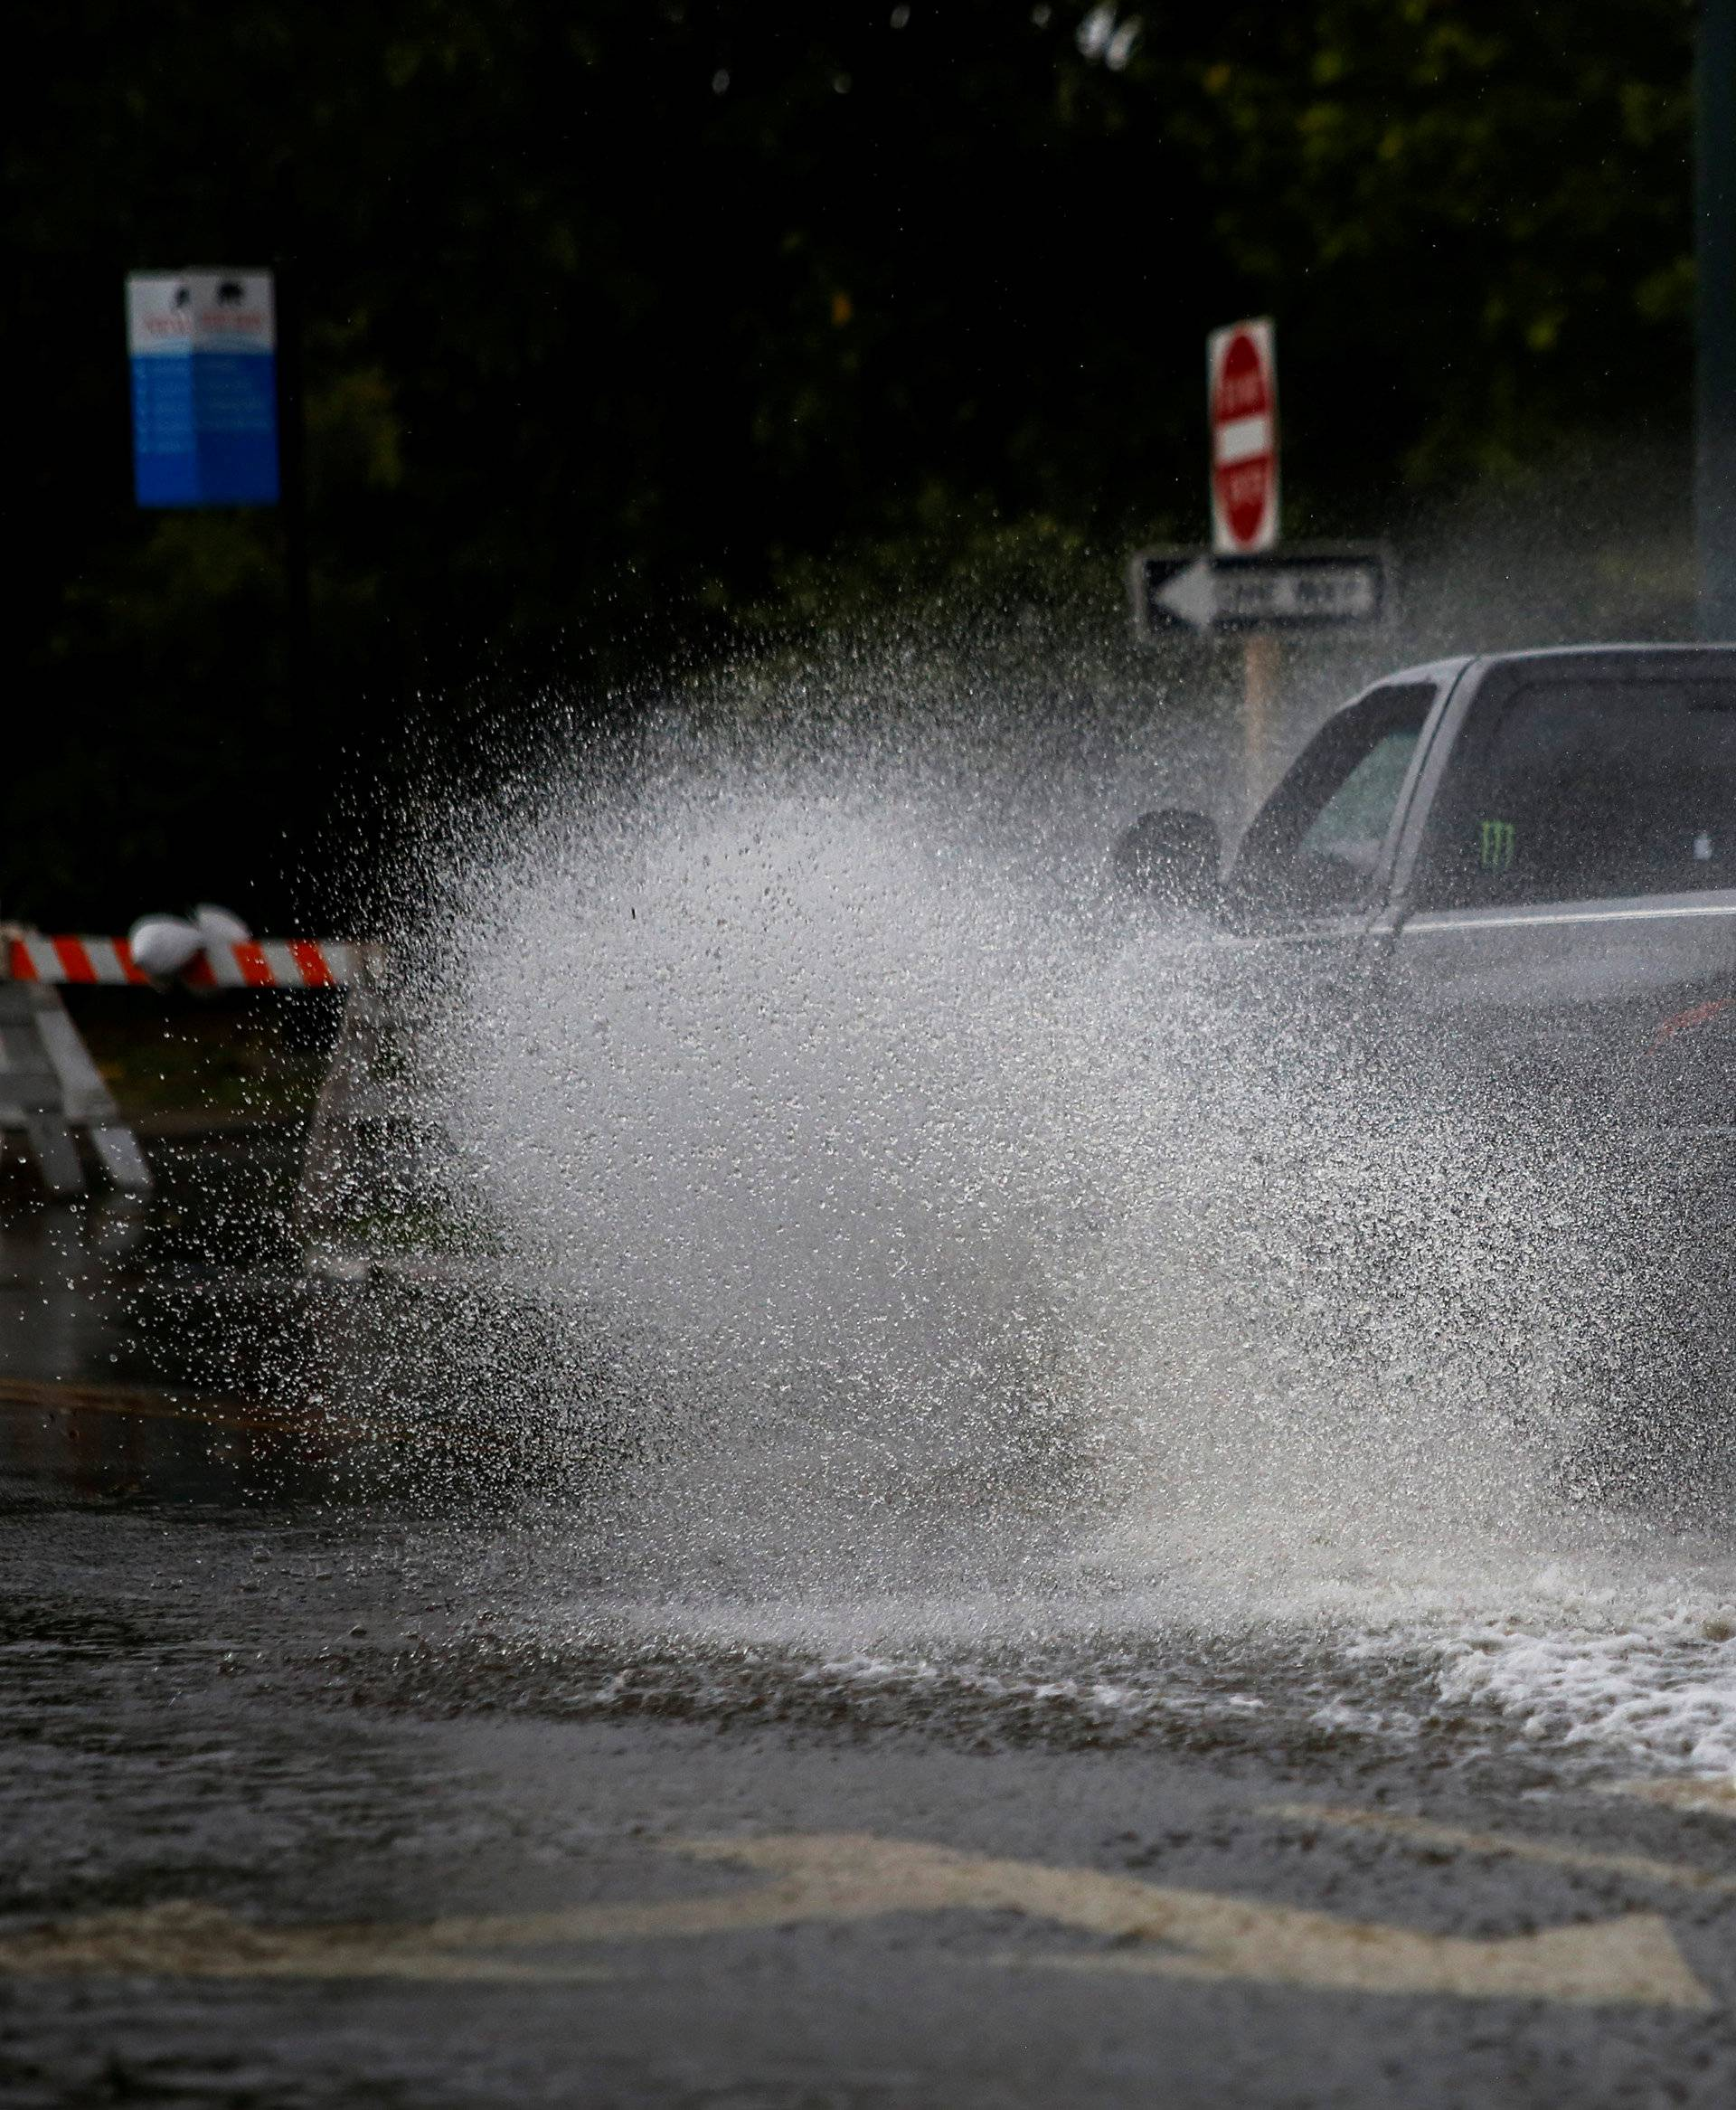 A man drives his vehicle around the Union Point Park Complex through floodwaters as the Hurricane Florence comes ashore in New Bern, North Carolina